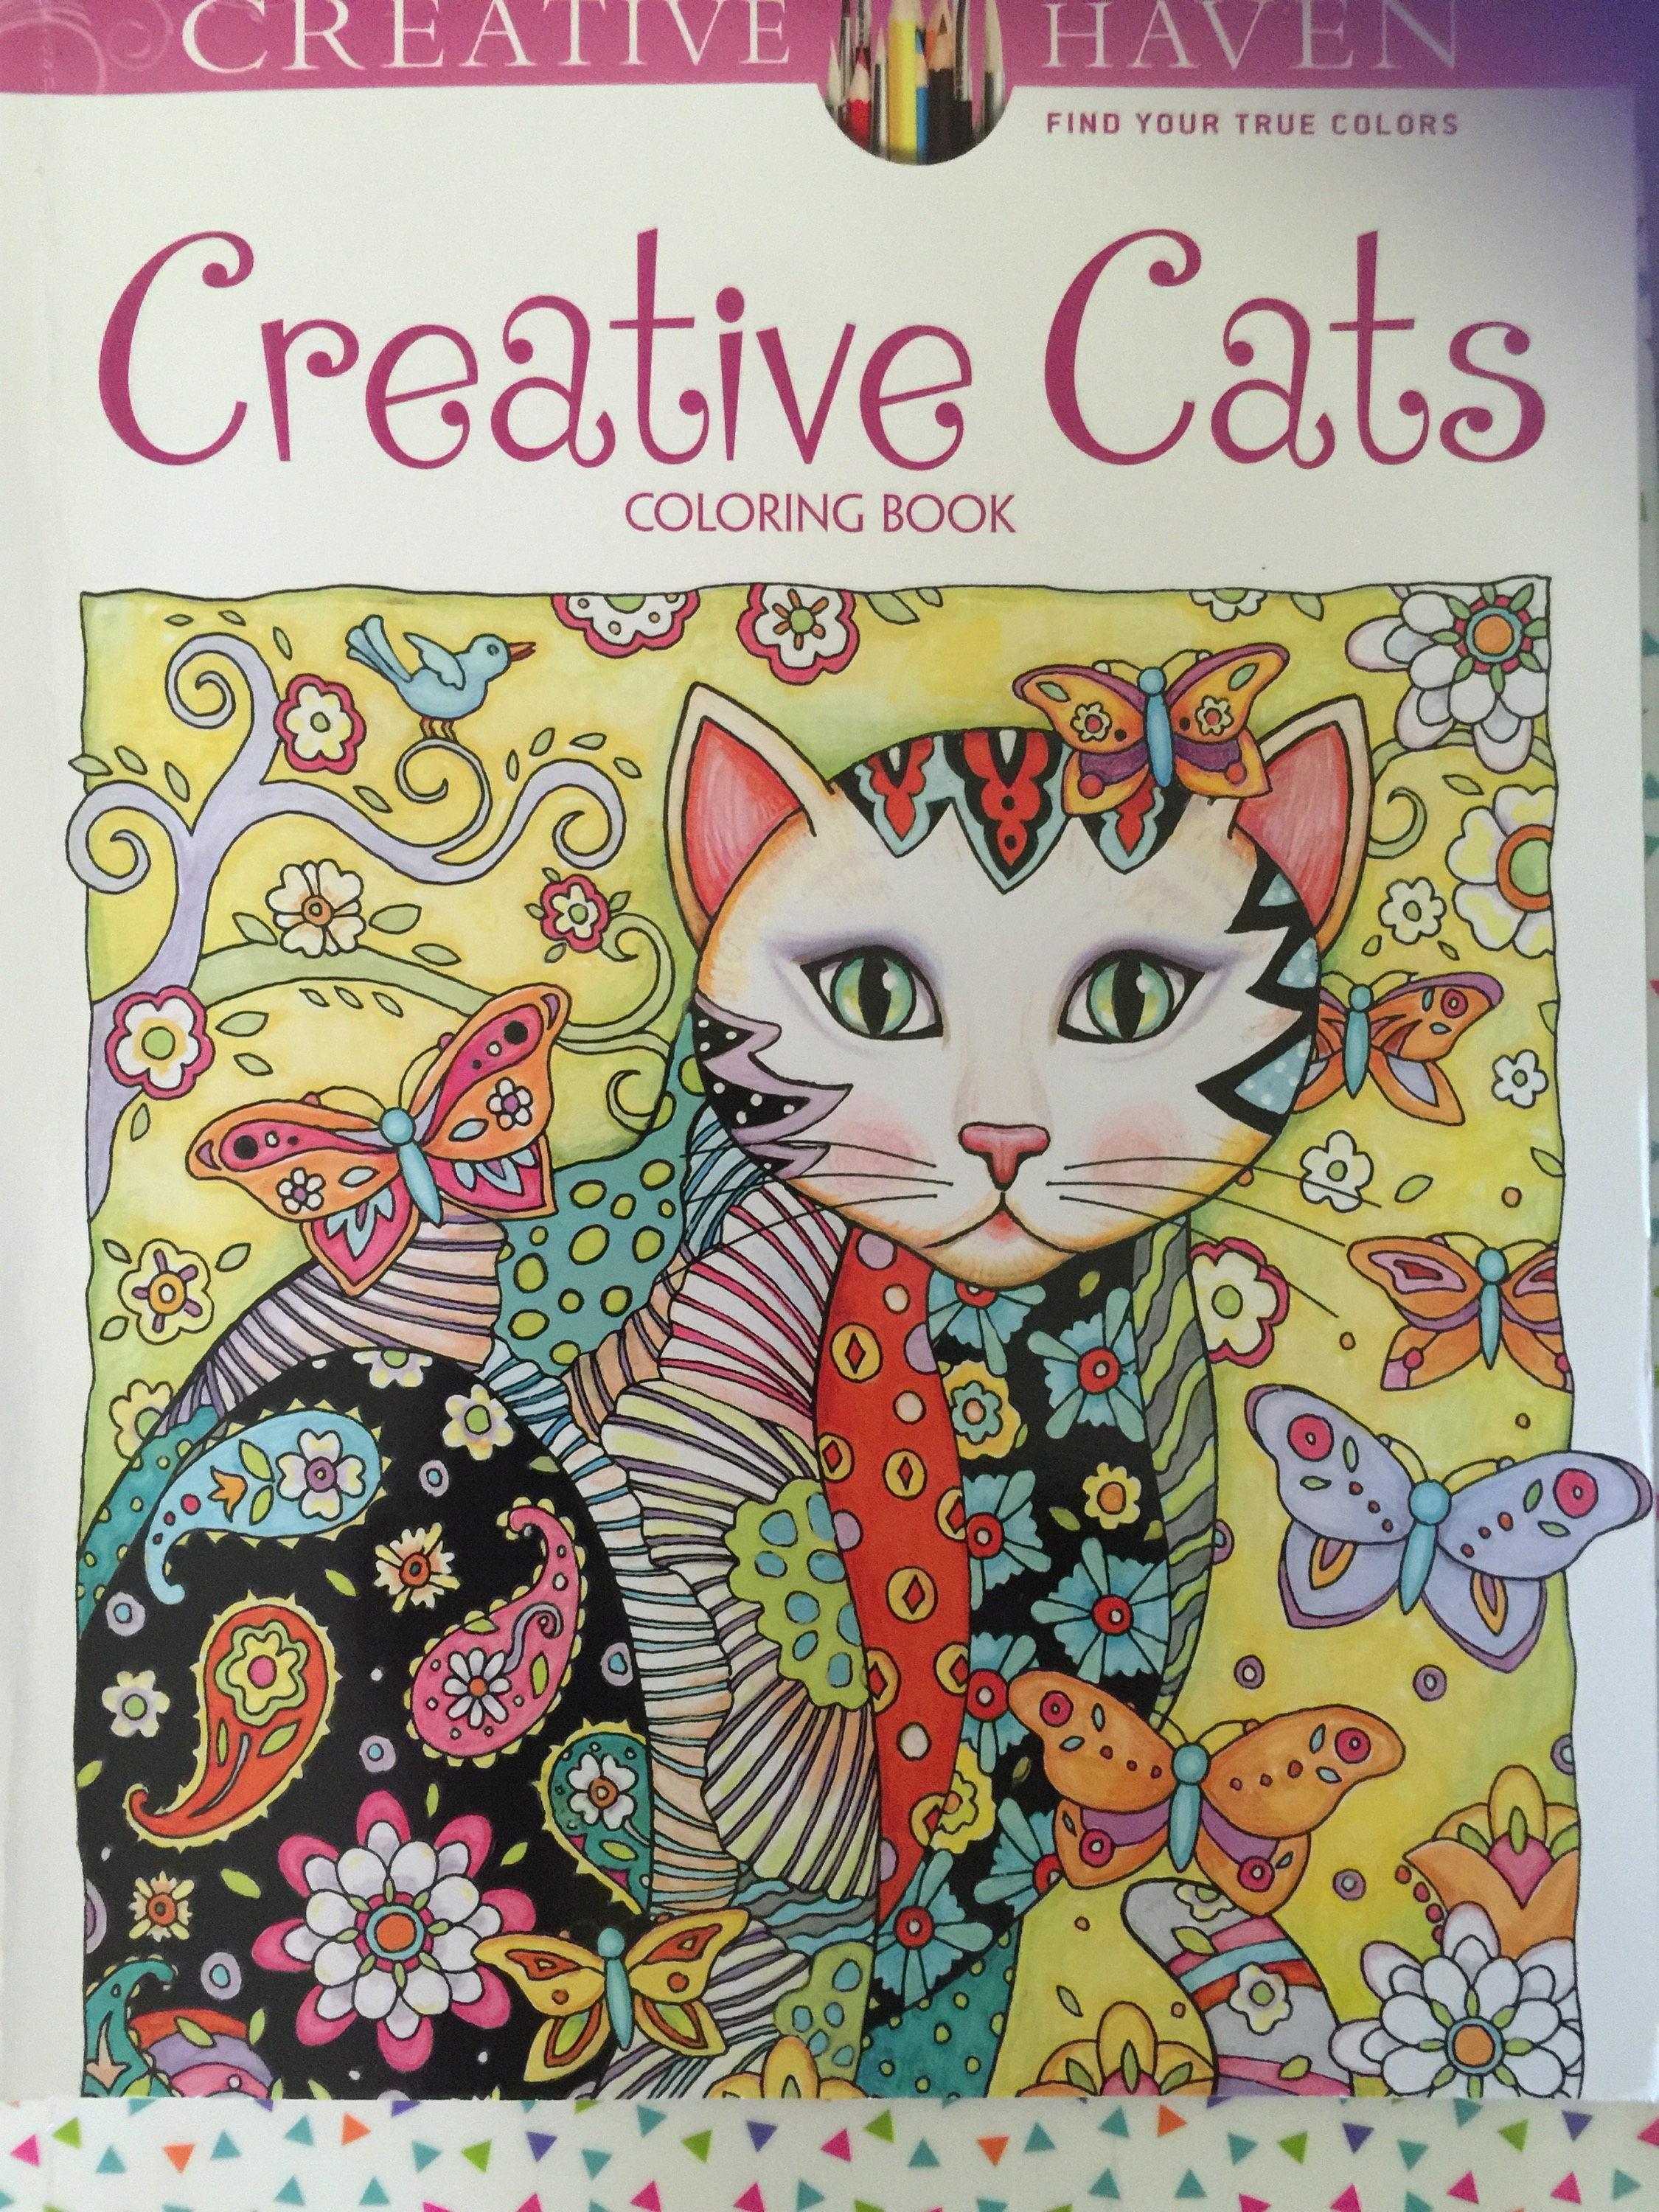 Creative Haven Cats Chronically Batgirl Colours